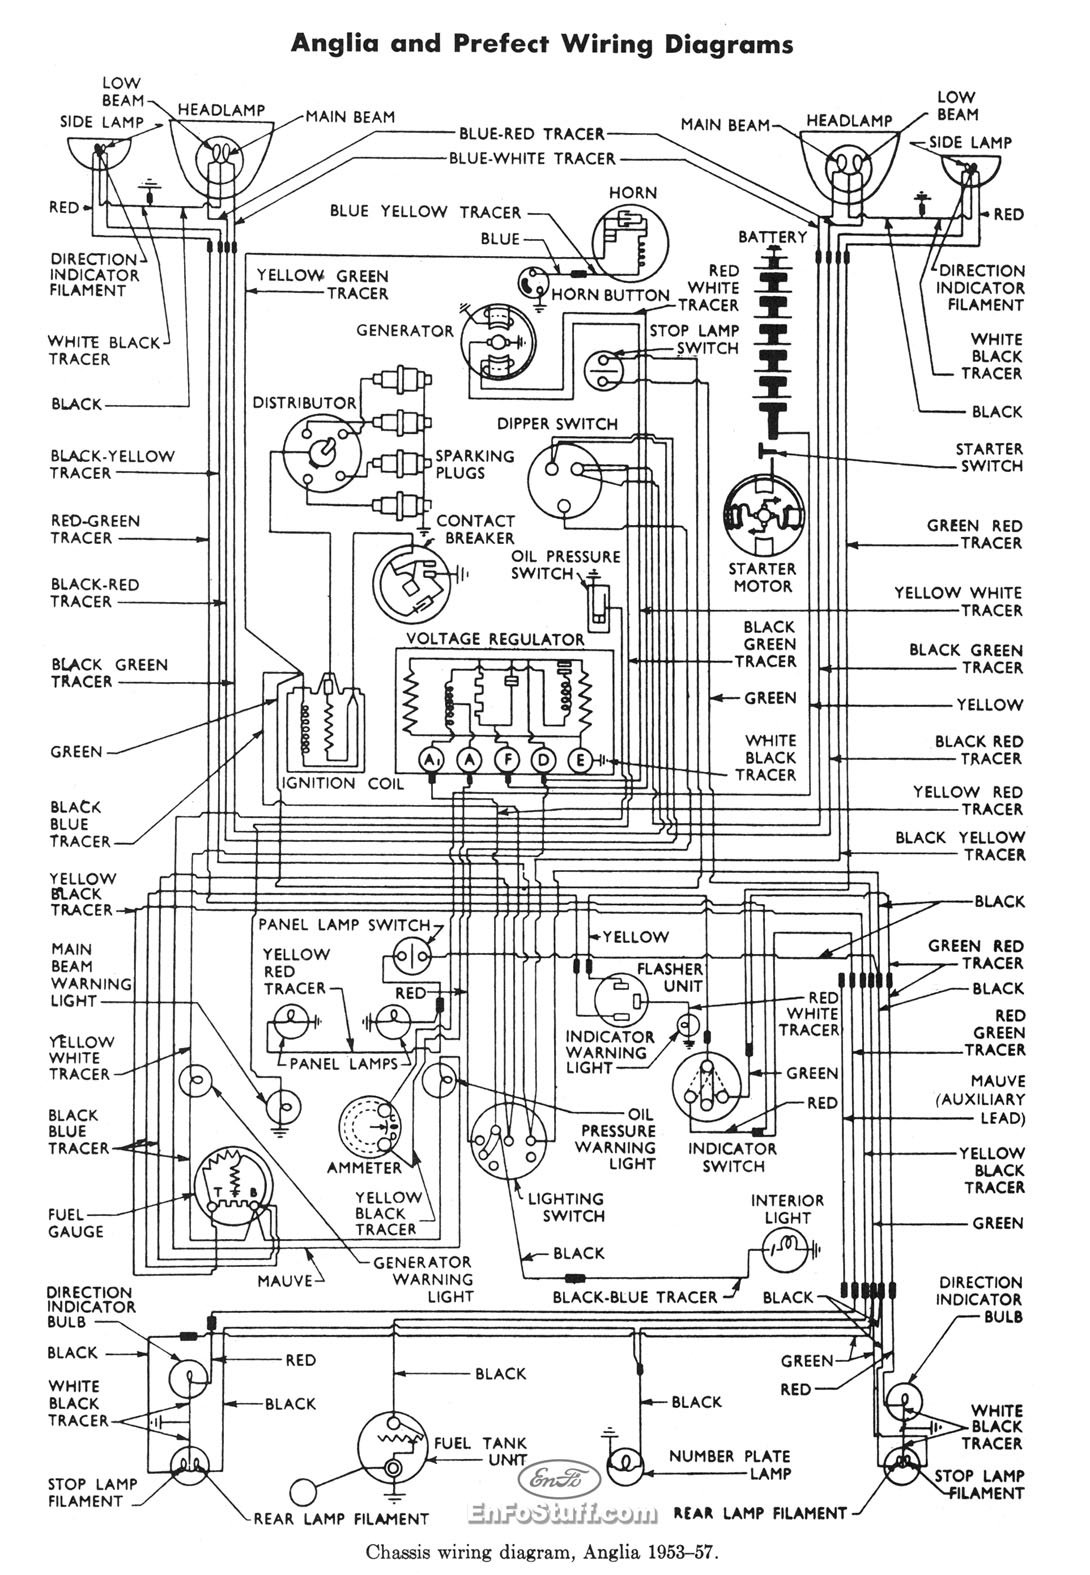 ford anglia 1953 57 wiring diagram wiring diagram for ford anglia 1953 57 ford 3000 electrical wiring diagram at bakdesigns.co